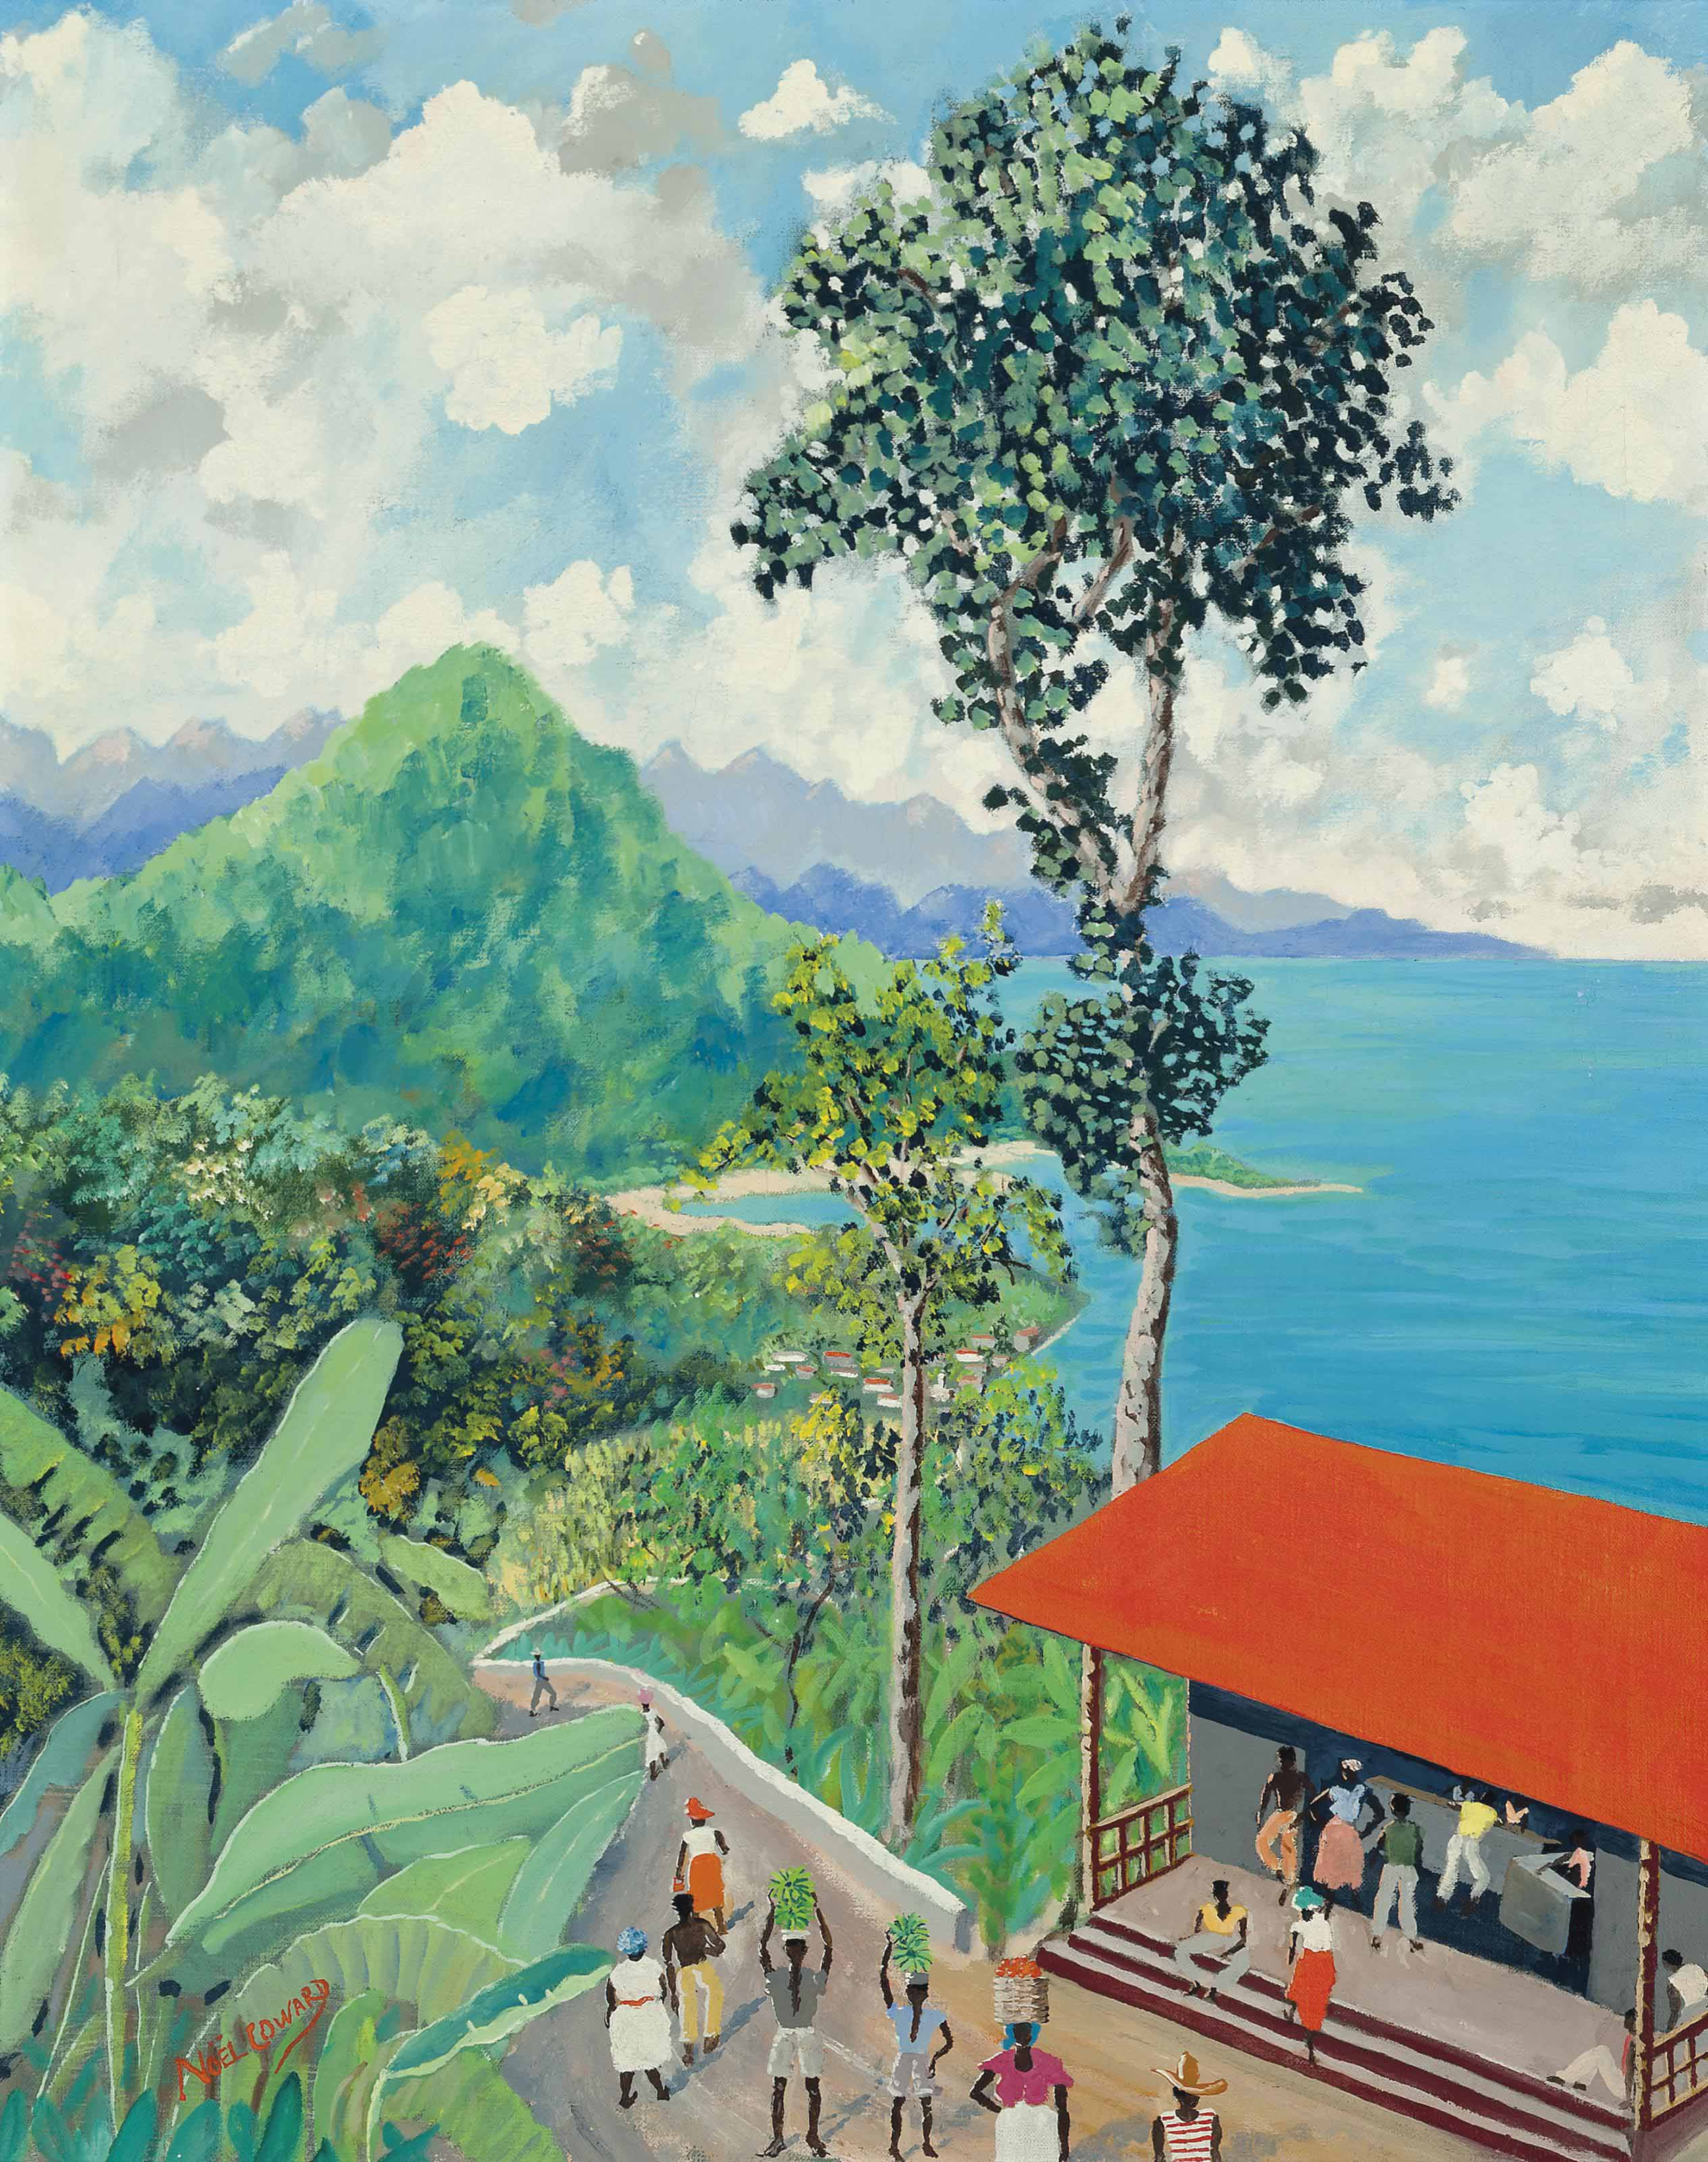 Jamaican Coastline with Red Roof Shack